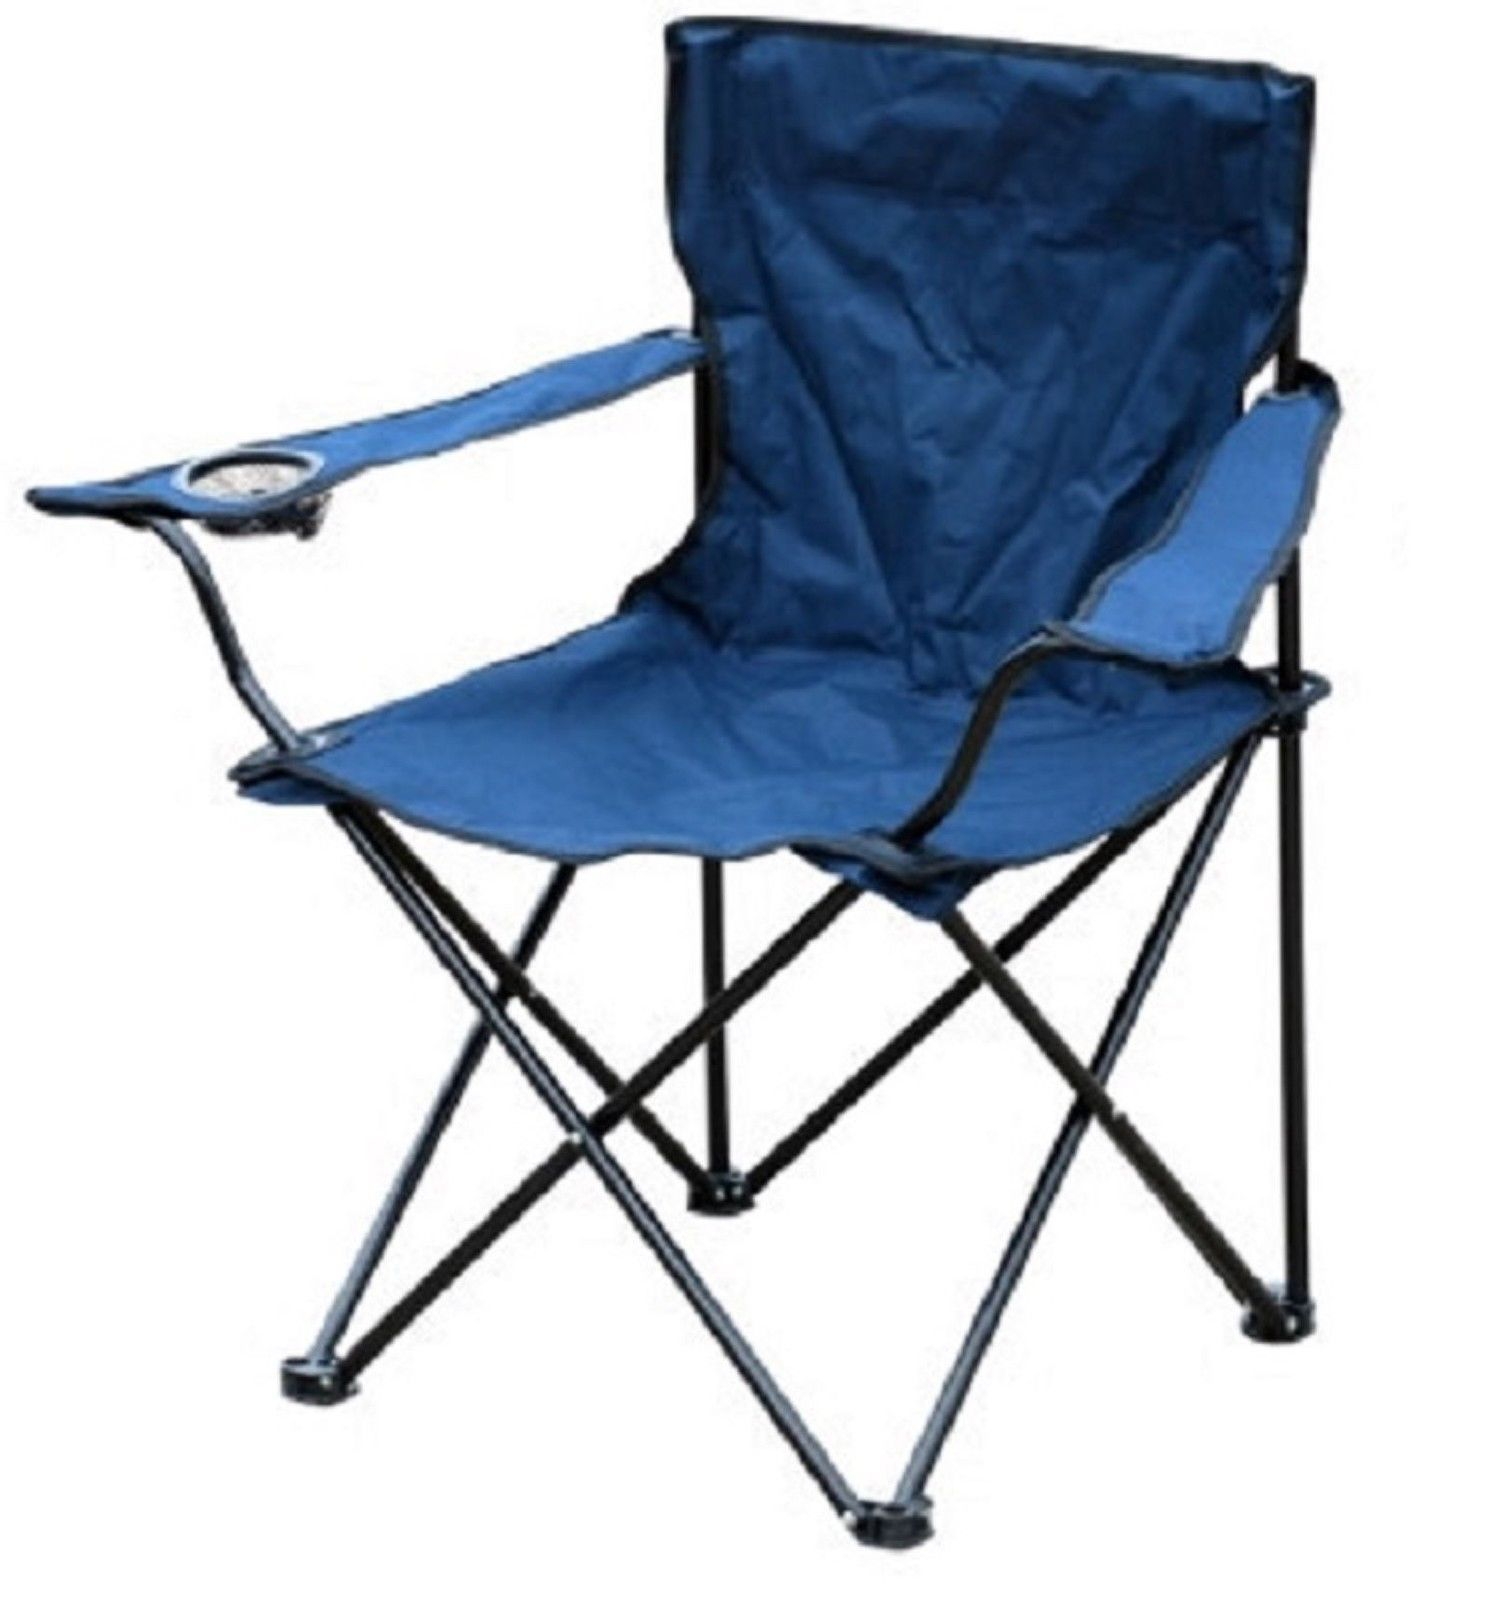 portable folding chairs nursing chair and stool brand new lightweight outdoor camping garden